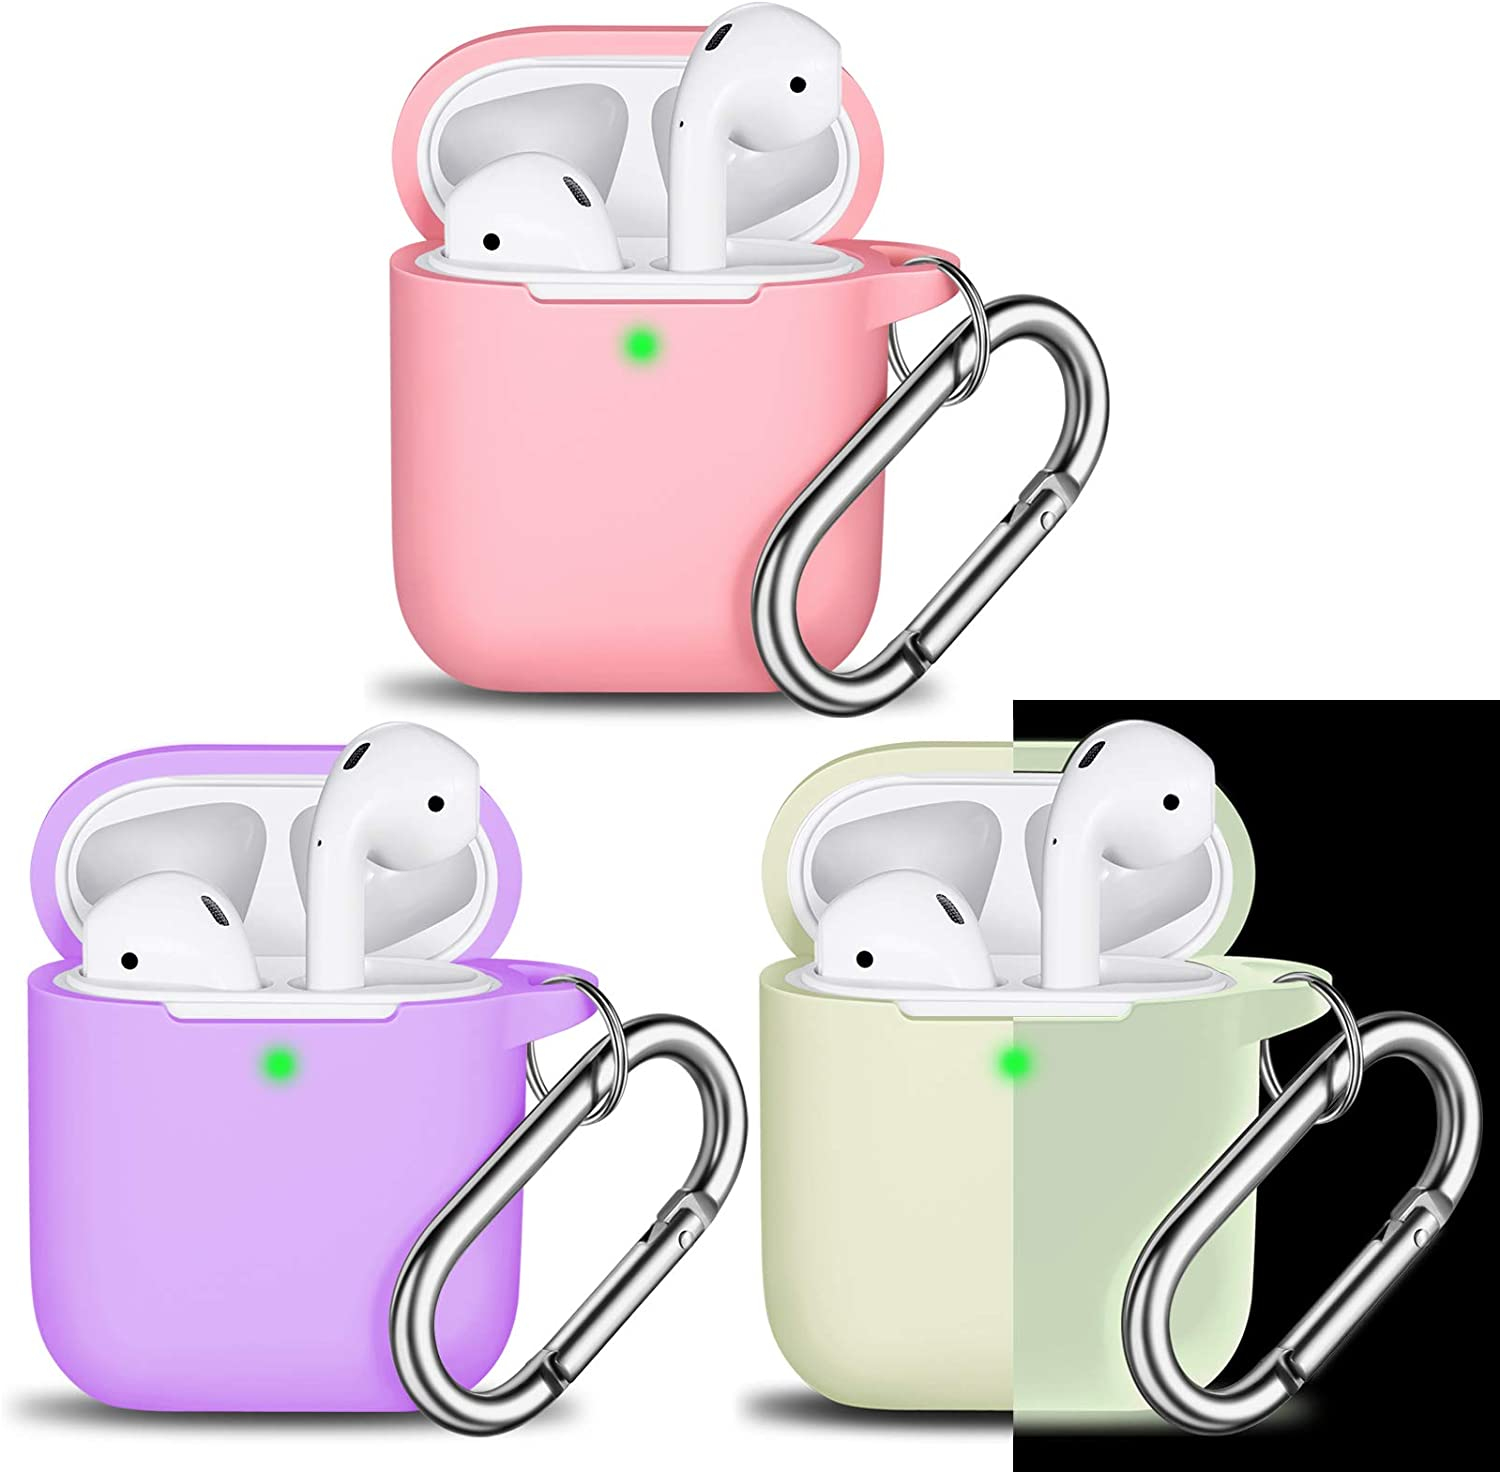 AirPods Case Cover with Keychain, Full Protective Silicone AirPods Accessories Skin Cover for Women Girl with Apple AirPods Wireless Charging Case [Front LED Visible]-Lavender/Pink/Nightglow